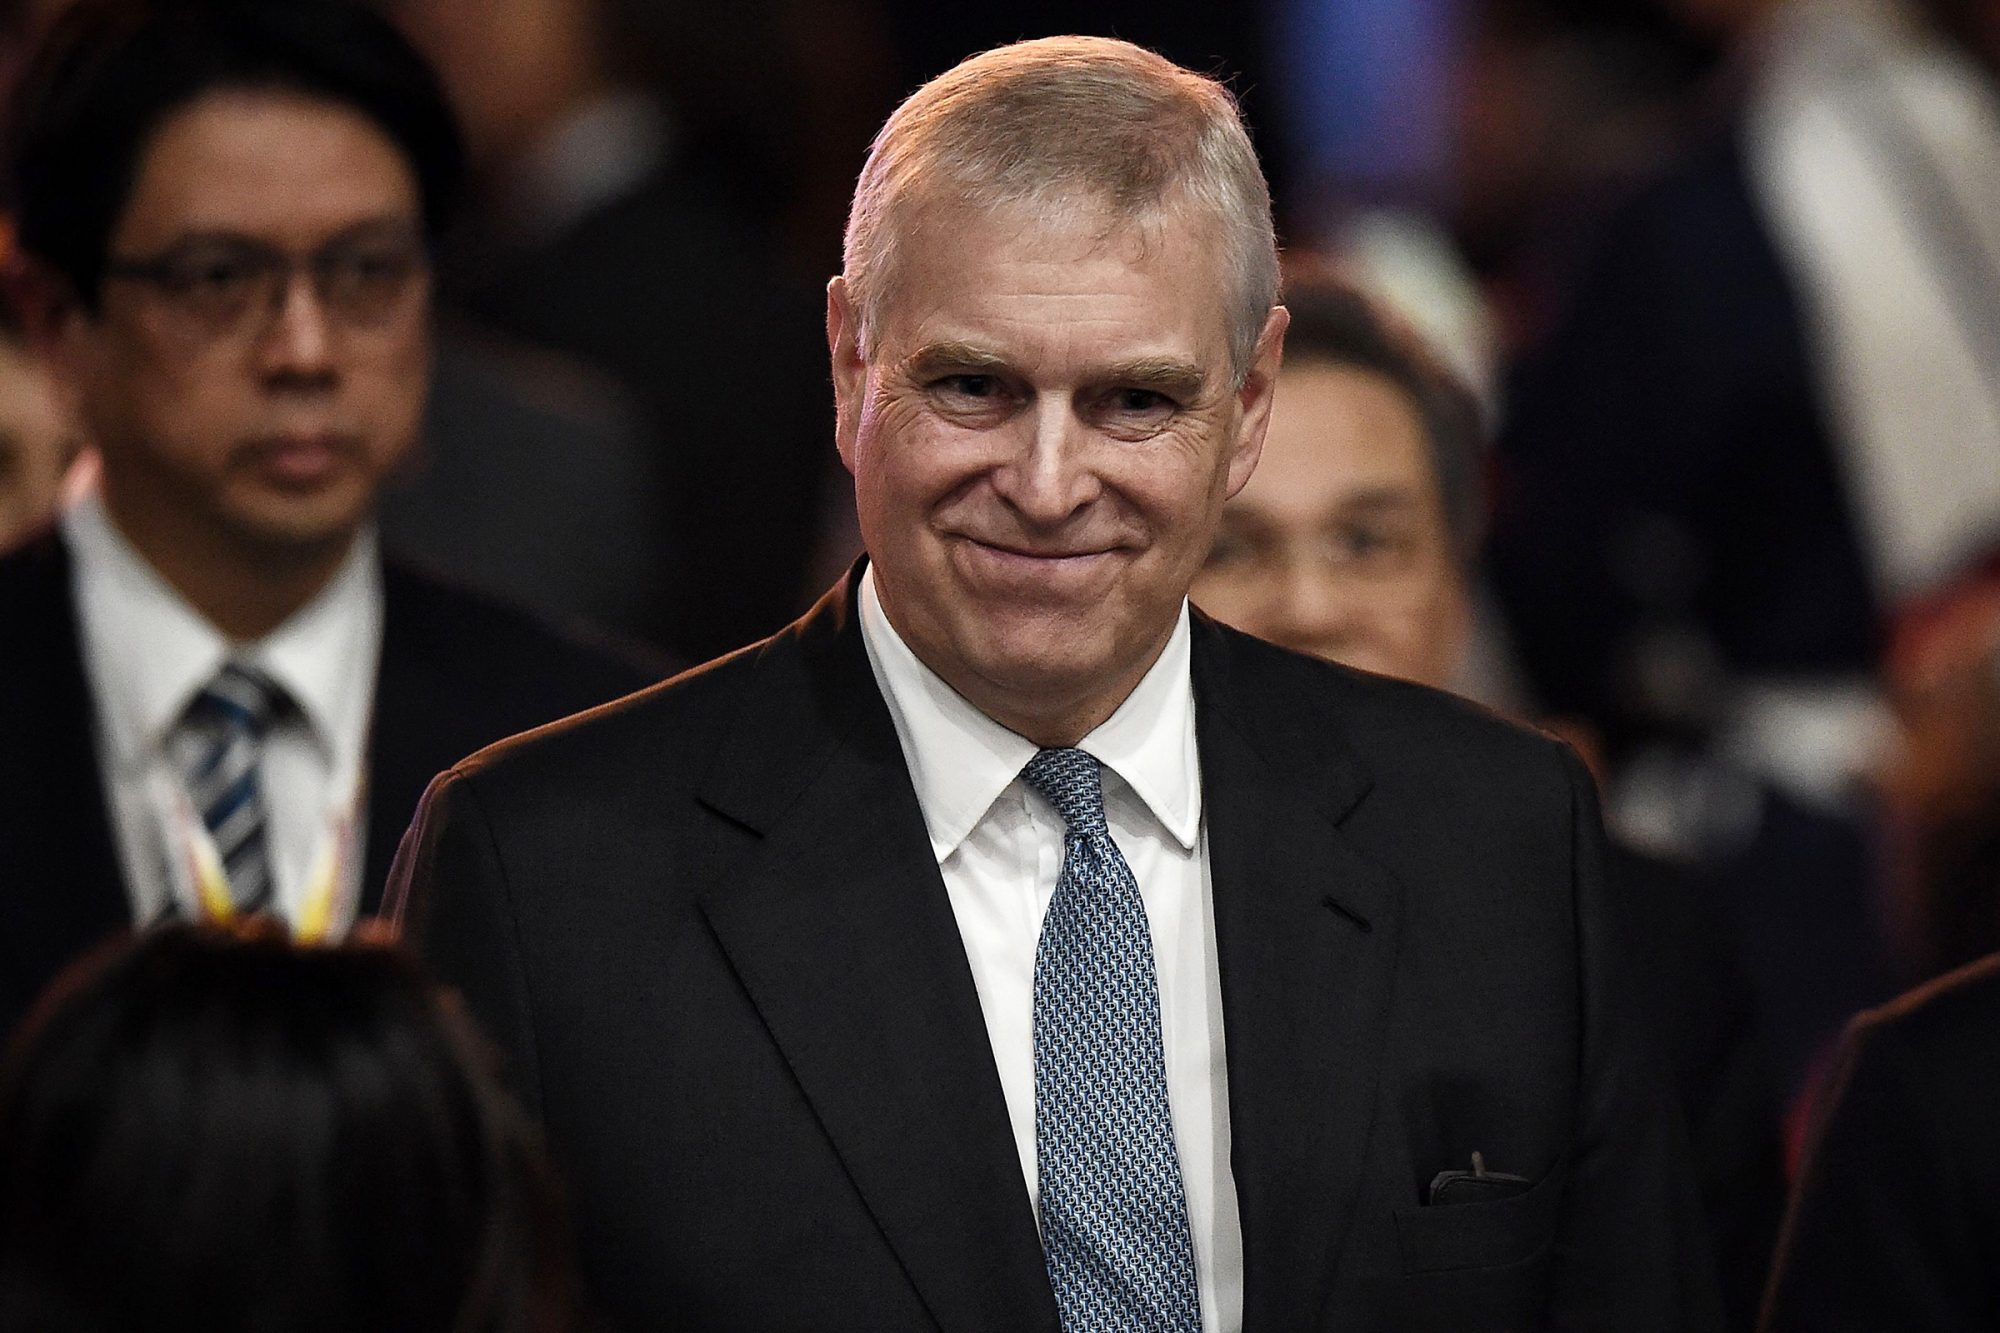 Prince Andrew, Duke of York leaves after speaking at the ASEAN Business and Investment Summit in Bangkok on November 3, 2019, on the sidelines of the 35th Association of Southeast Asian Nations